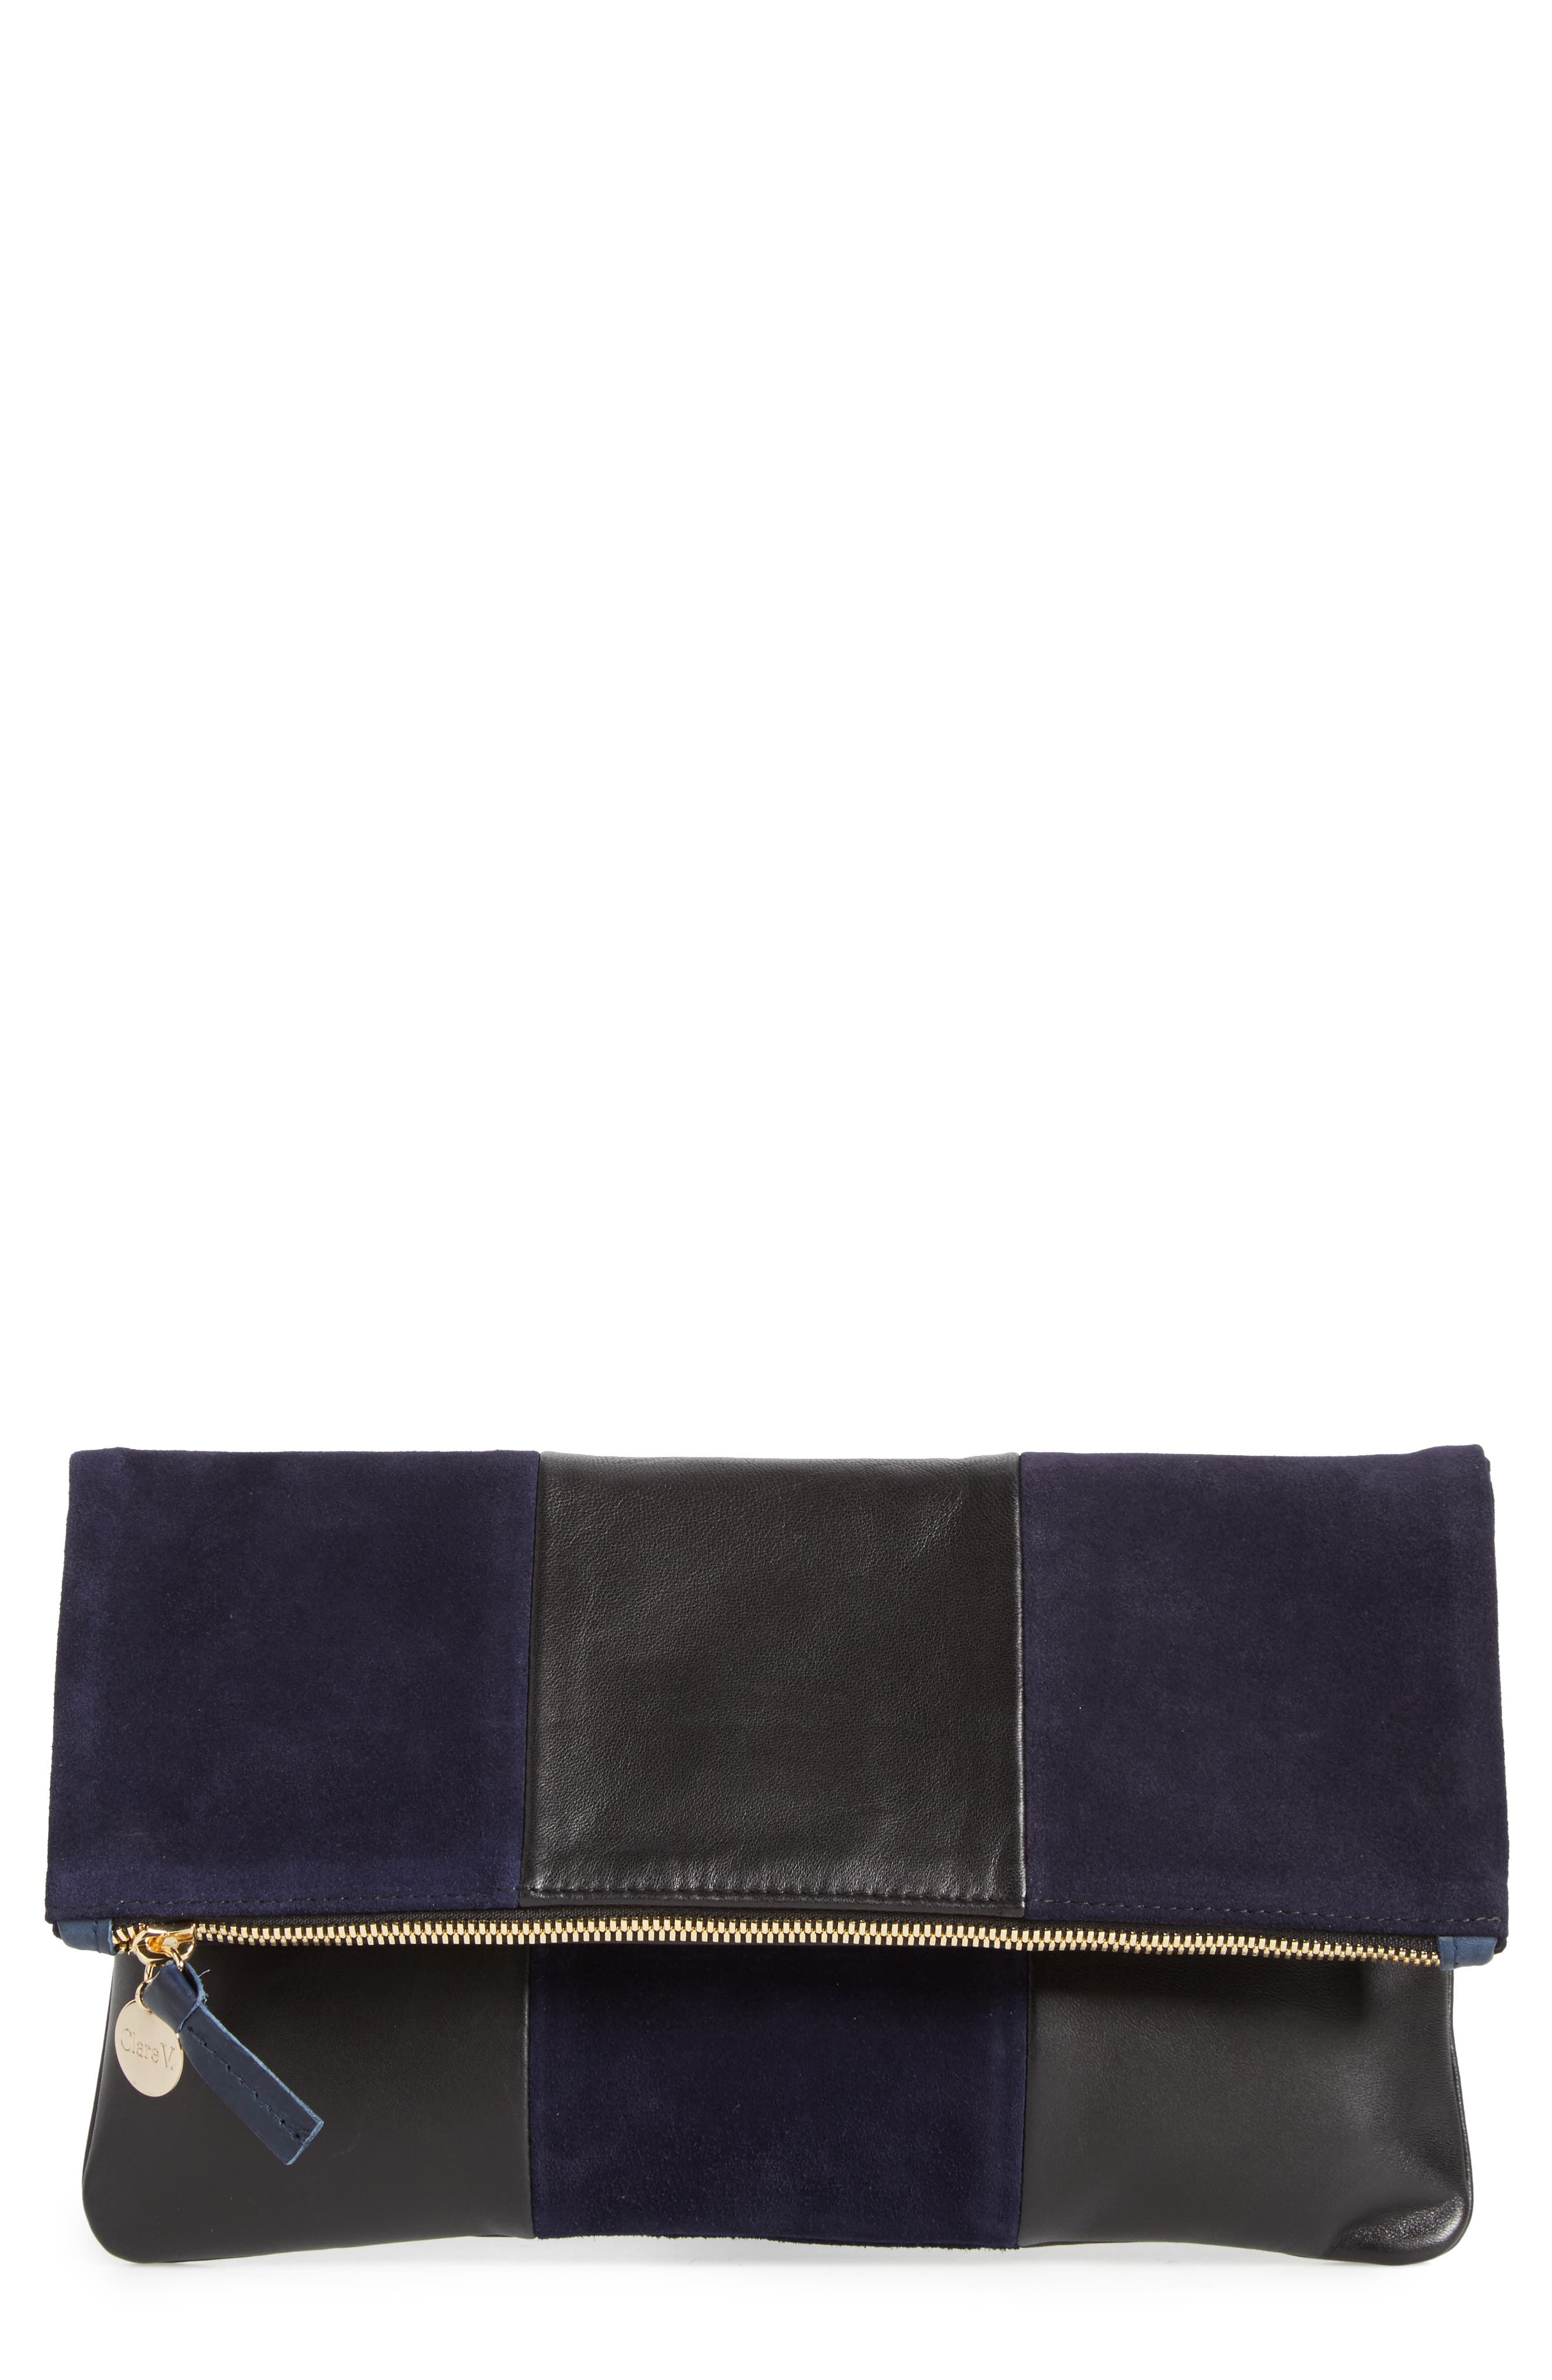 Leather & Suede Foldover Clutch,                             Main thumbnail 1, color,                             001